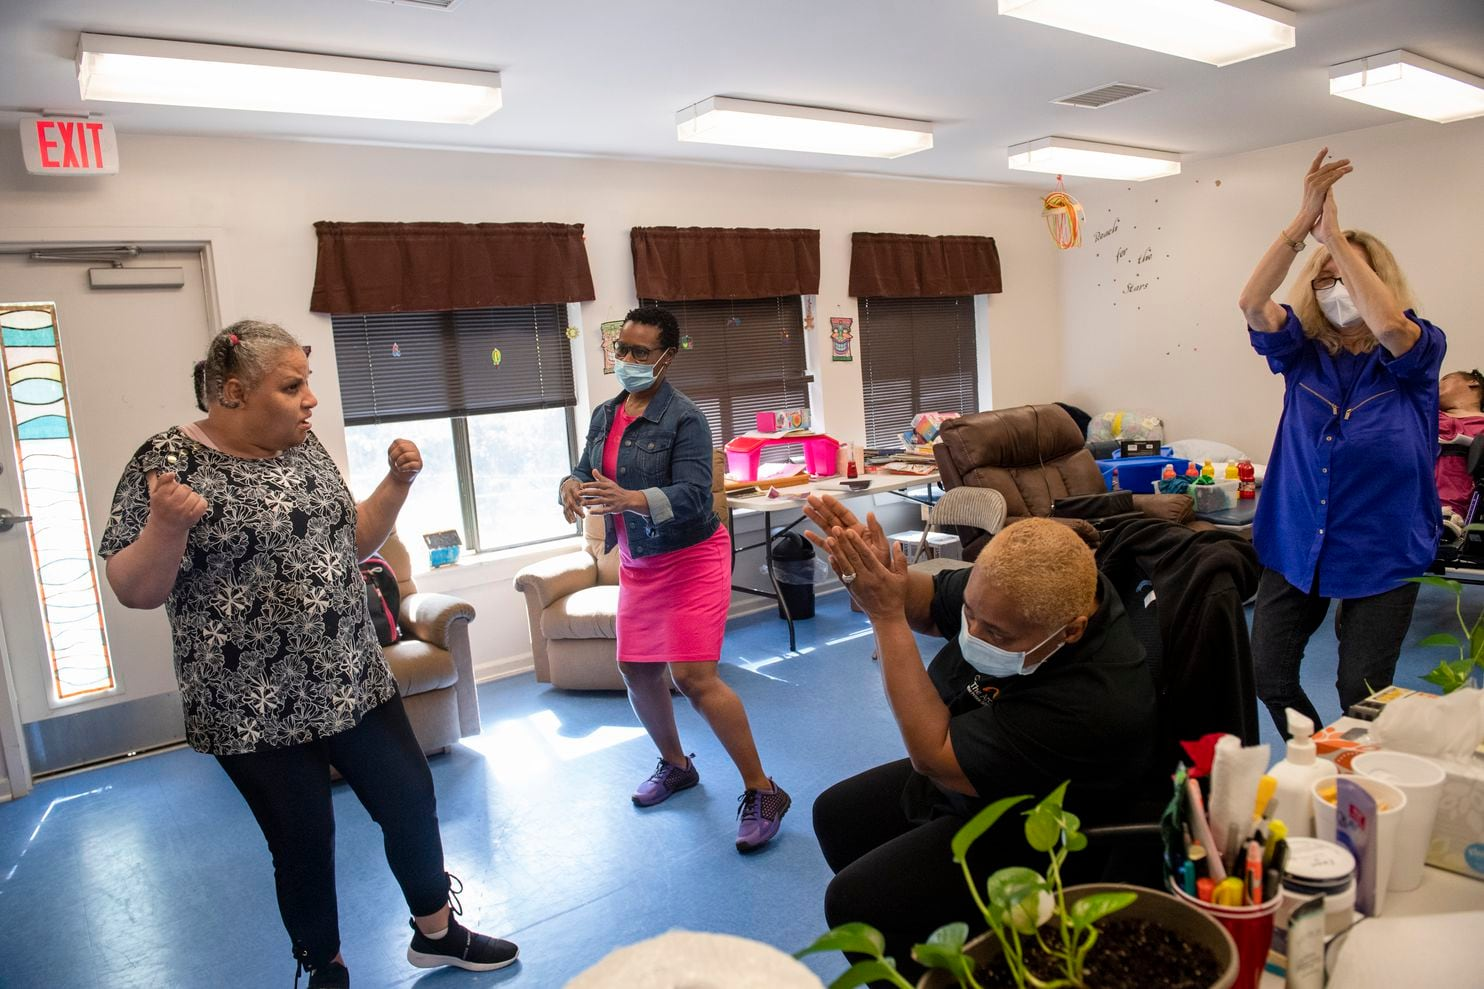 Dancing disabled patients Before entering their day program at Louisiana